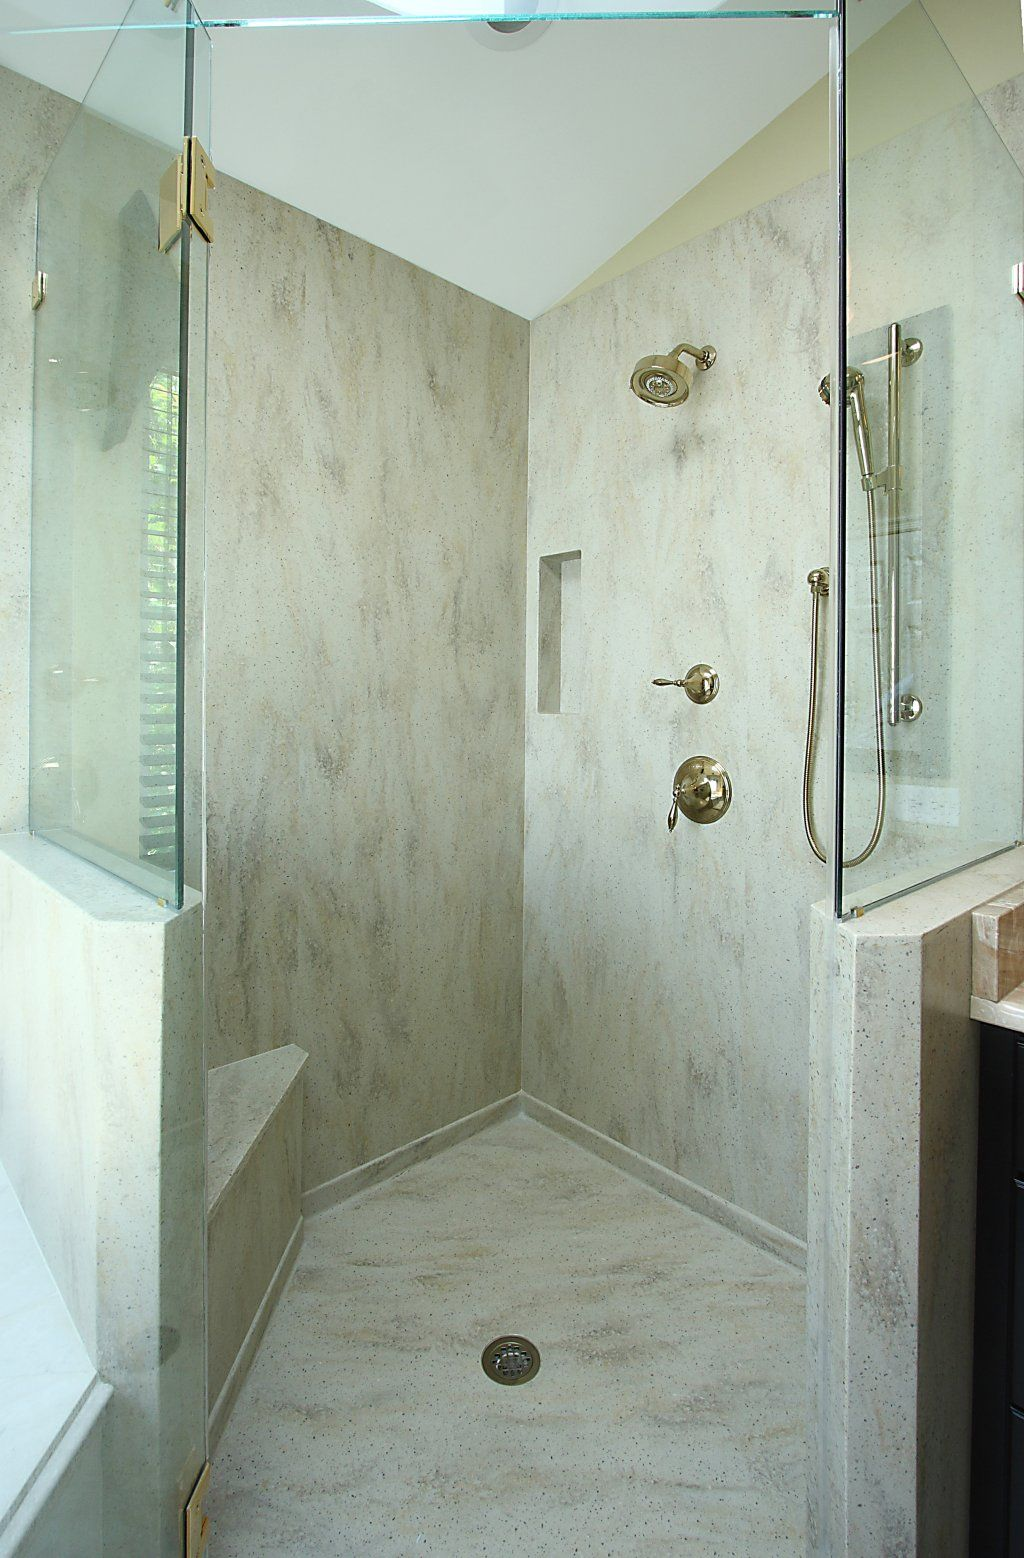 Best Corian Shower Pan For Your Shower Area Design Corian Shower